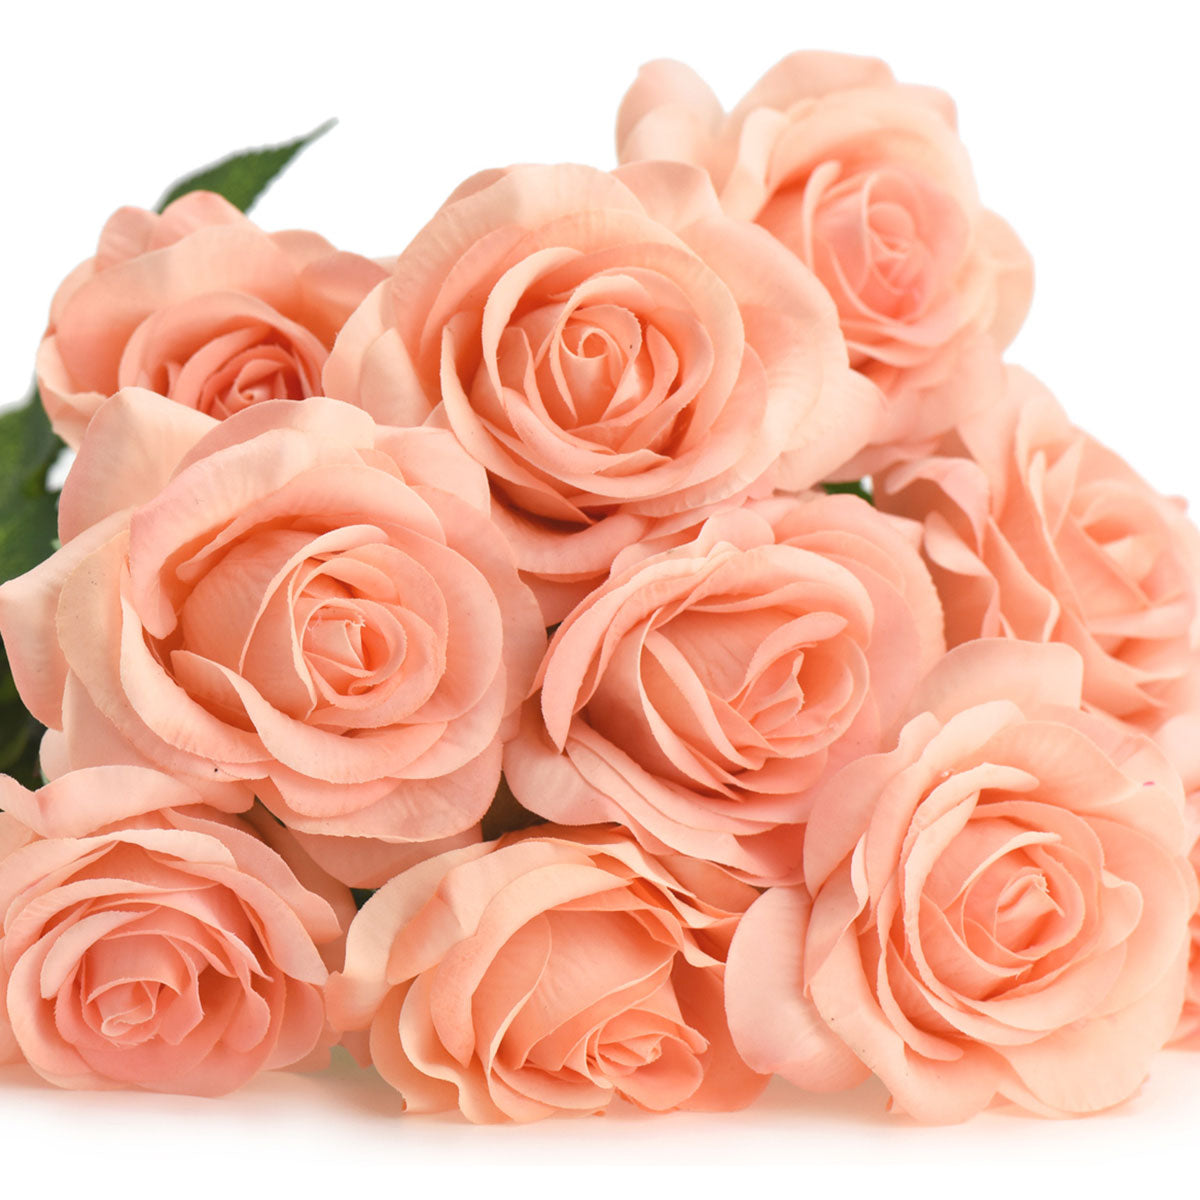 Peach Real Touch Silk Artificial Flowers 'Petals Feel and Look like Fresh Roses 10 Stems